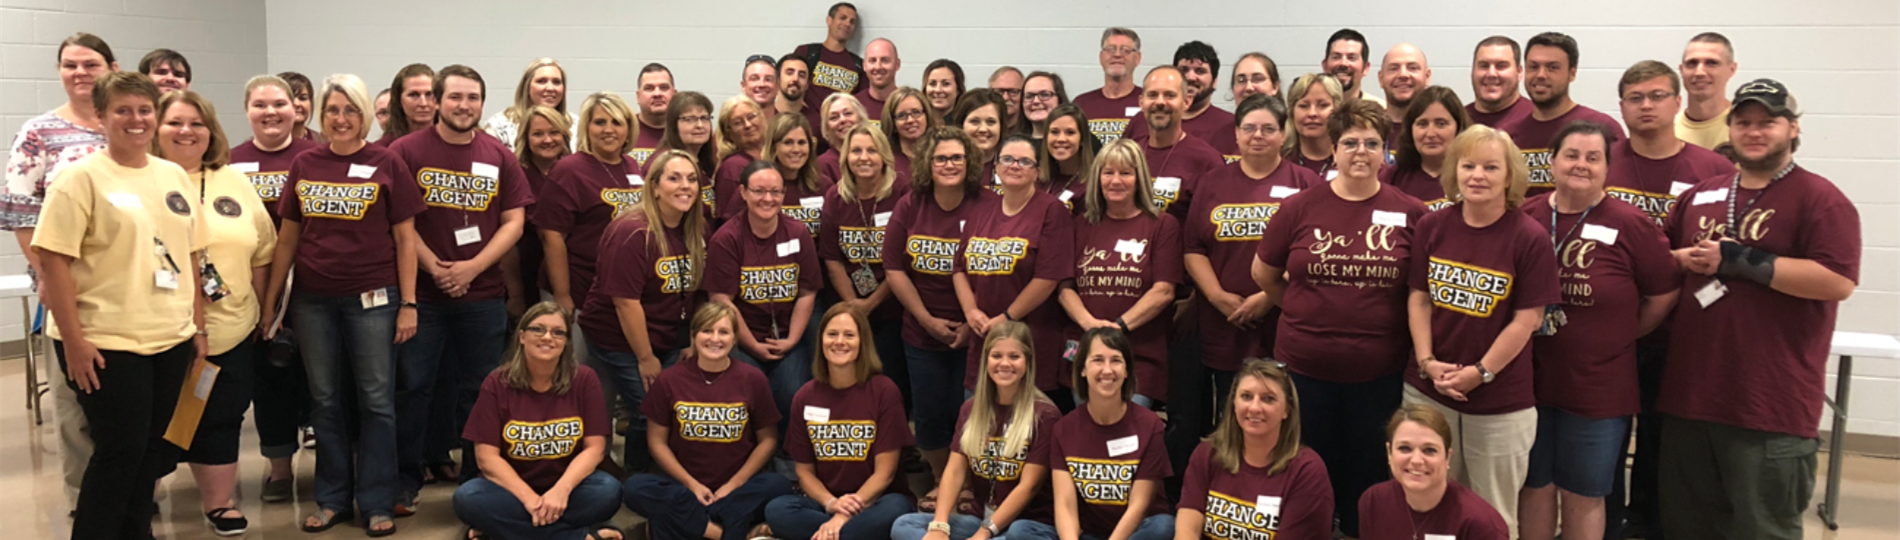 WCHS Staff Opening Day 2018